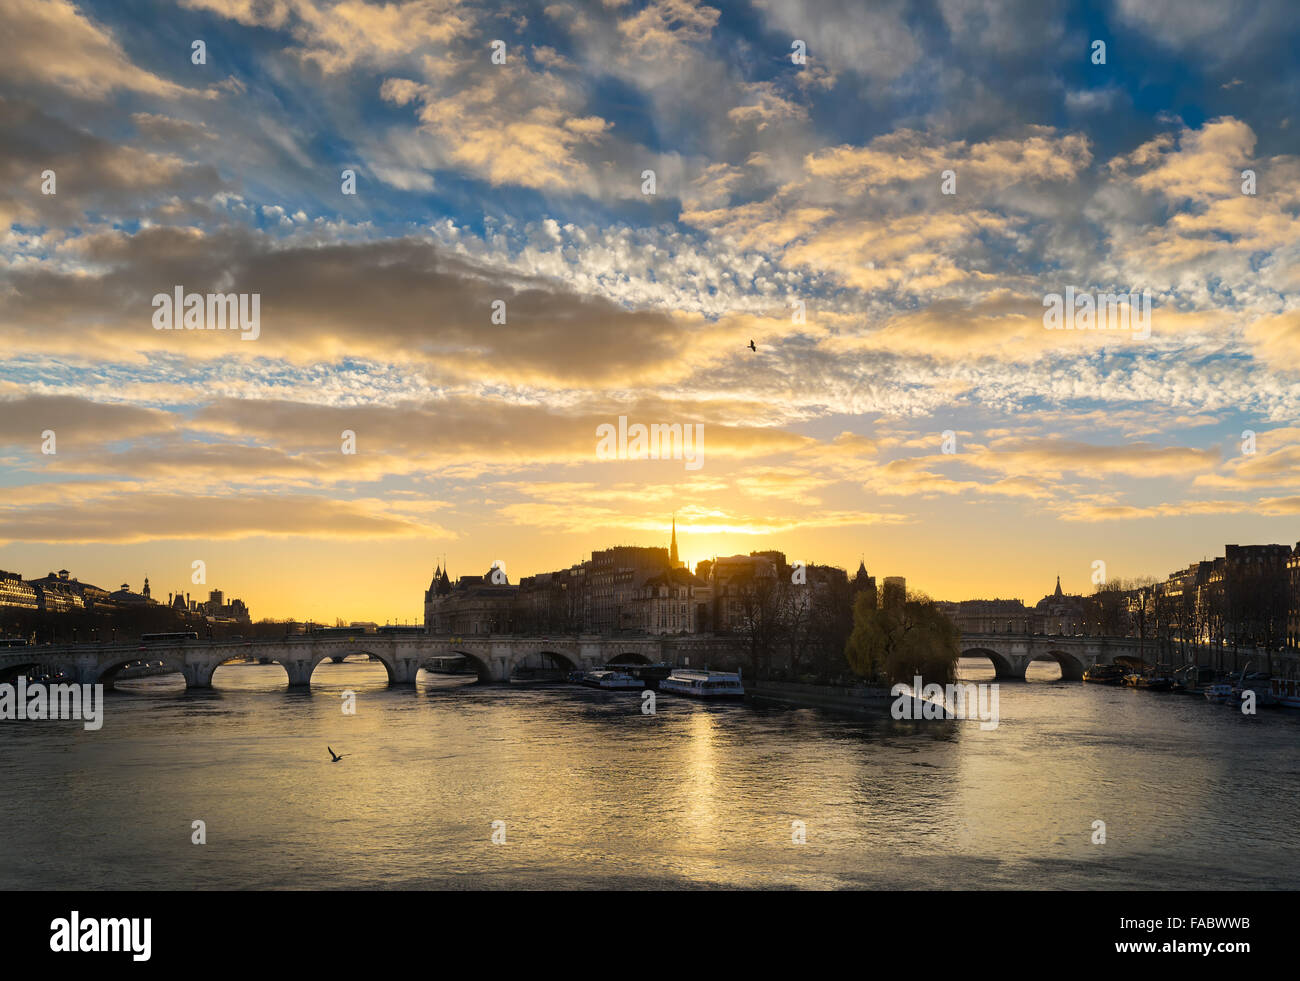 Sunrise over Ile de la Cite in central Paris. The Pont Neuf crosses the Seine River and links the Left and Right - Stock Image